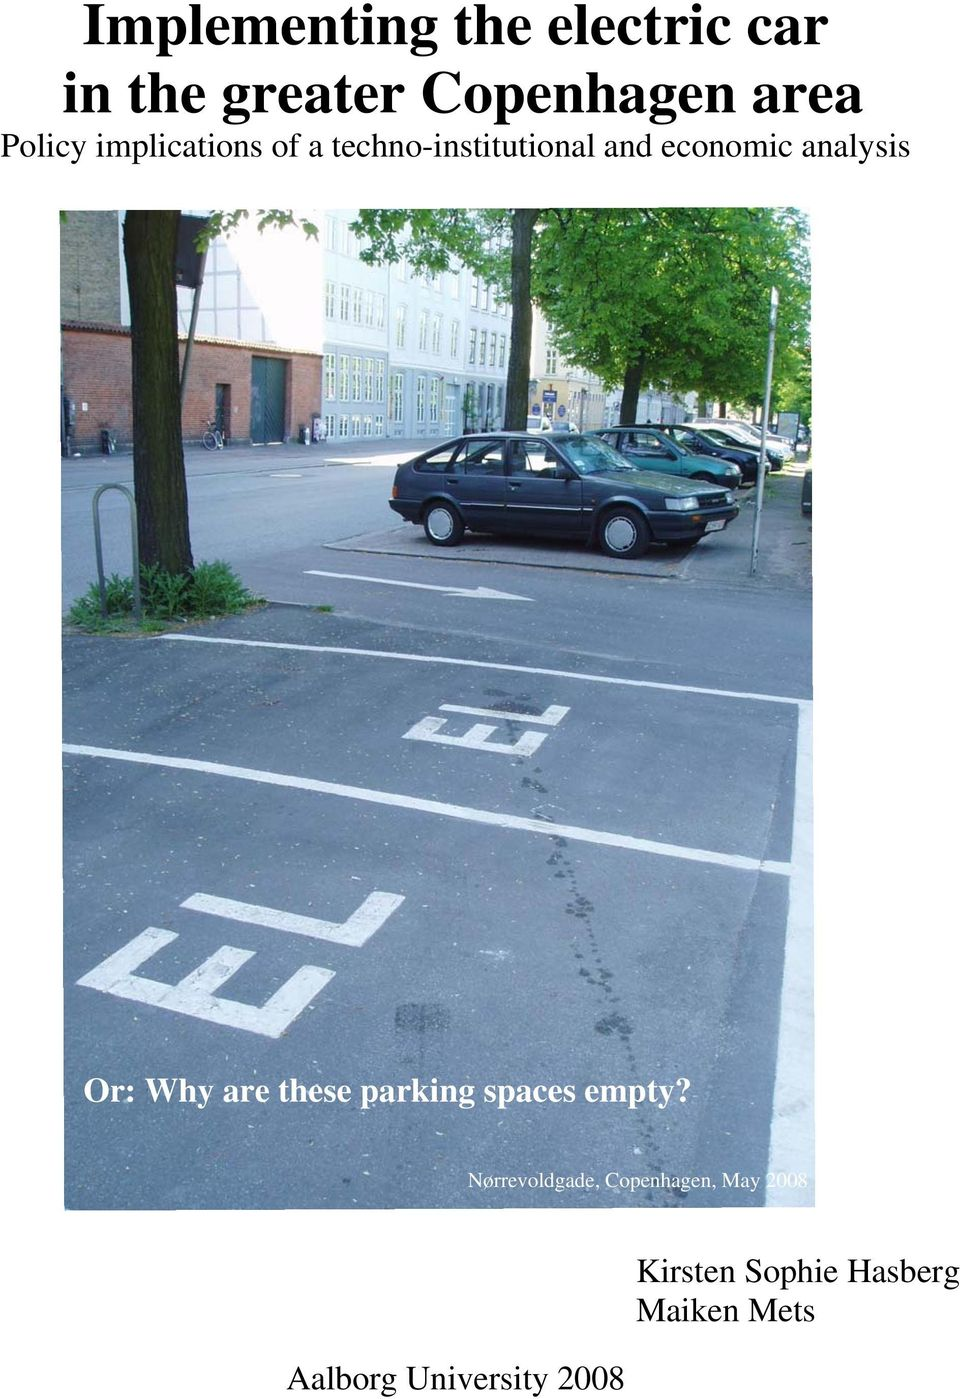 analysis Or: Why are these parking spaces empty?